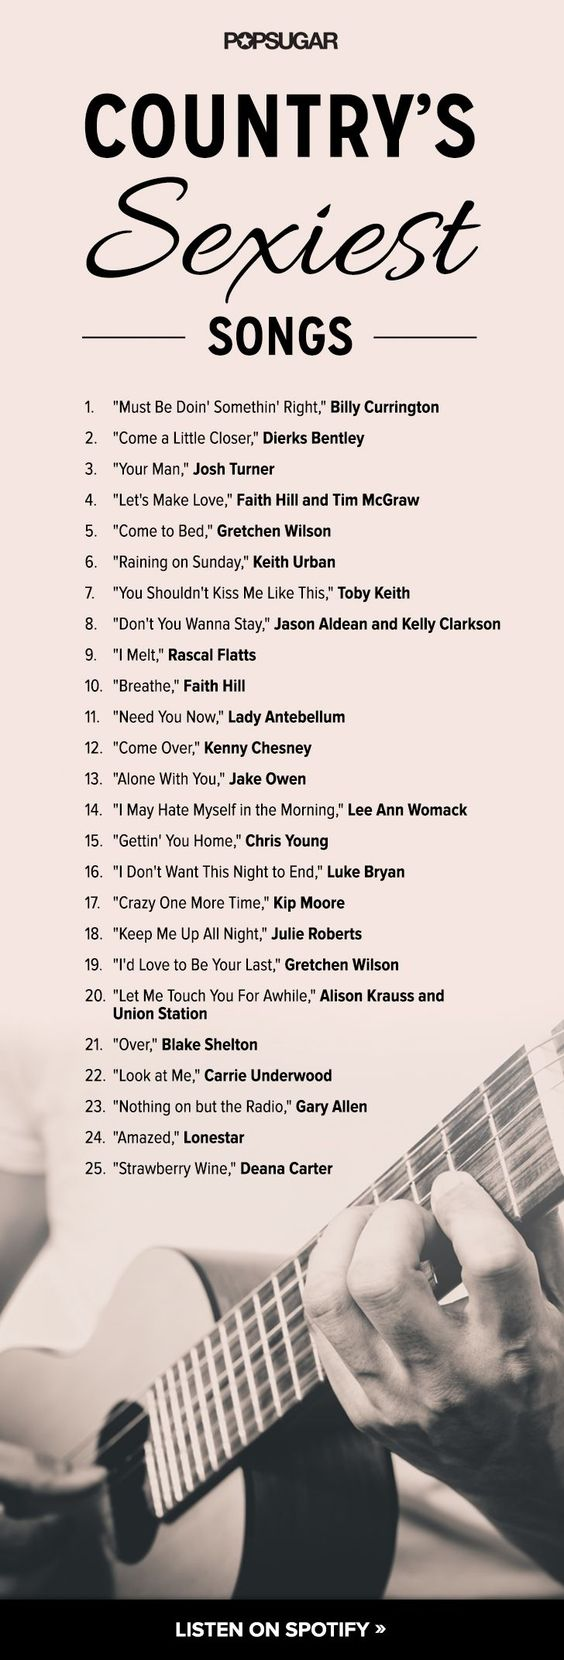 The sexiest country songs —good list